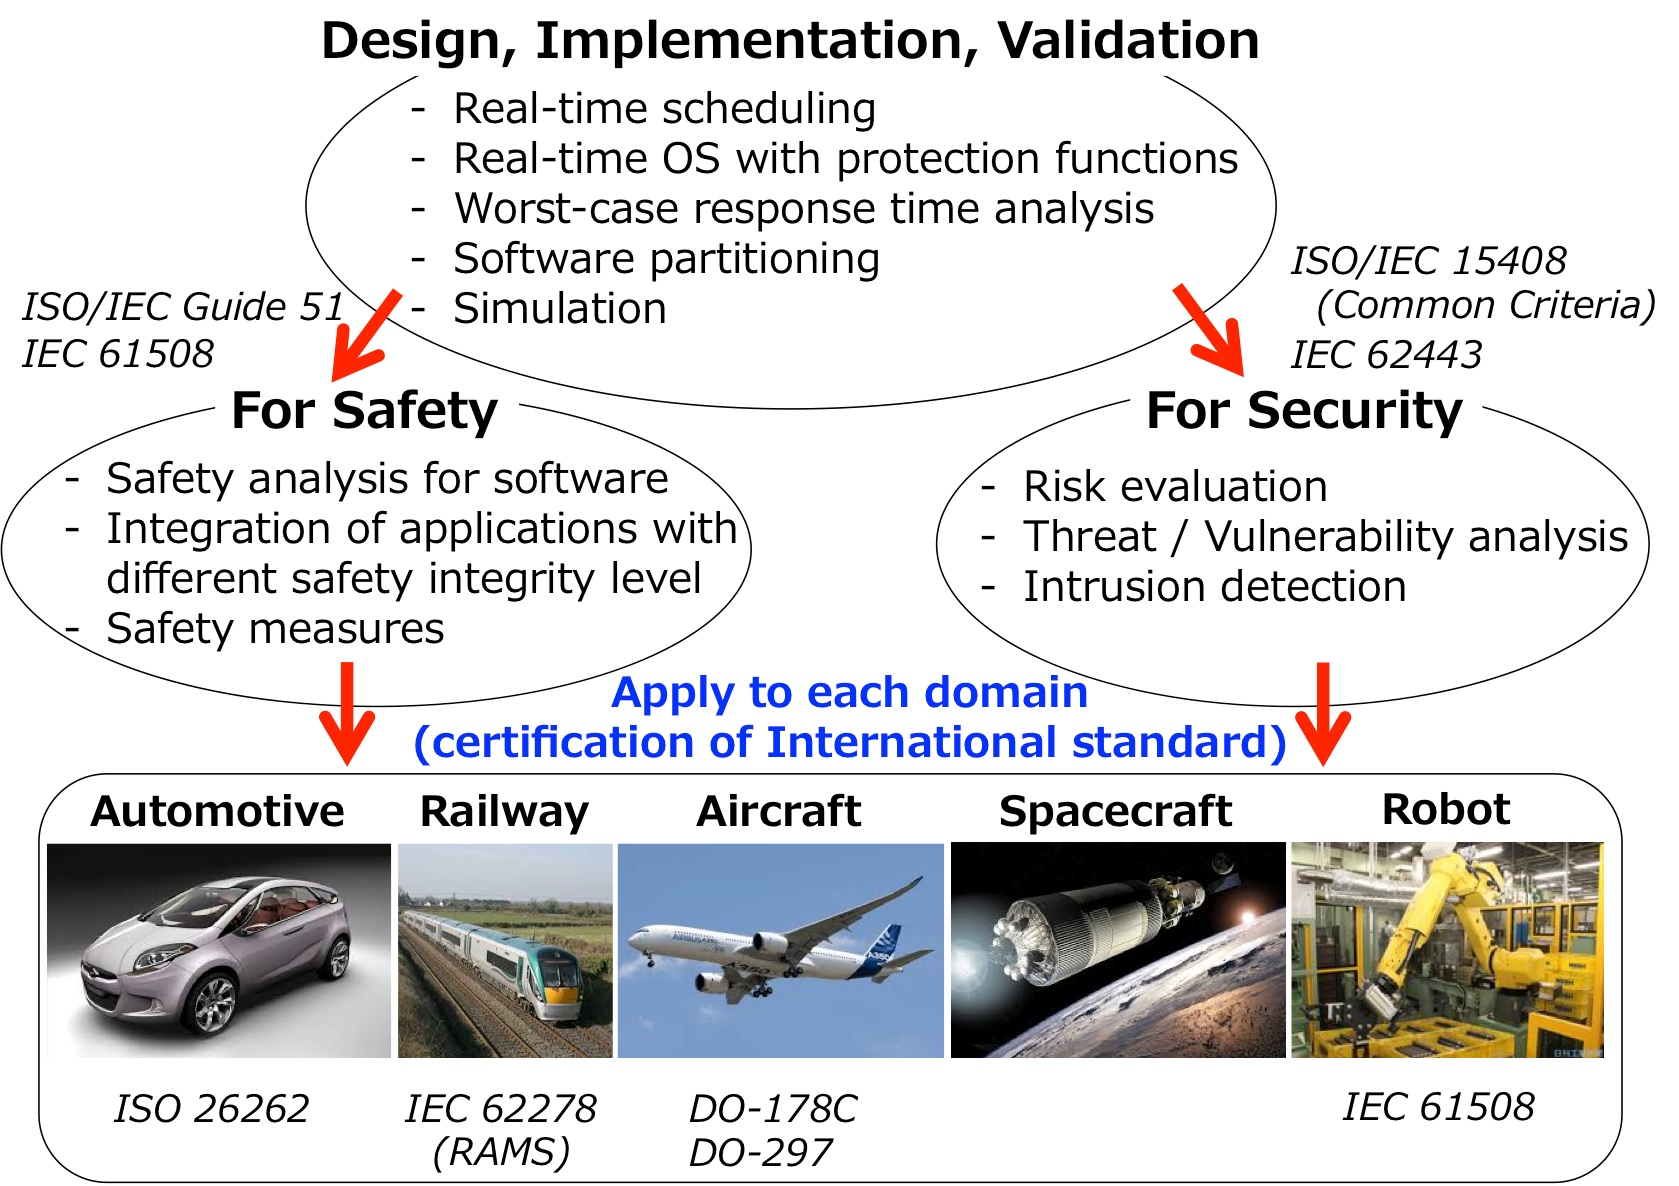 Design and development methods for embedded system safety and security